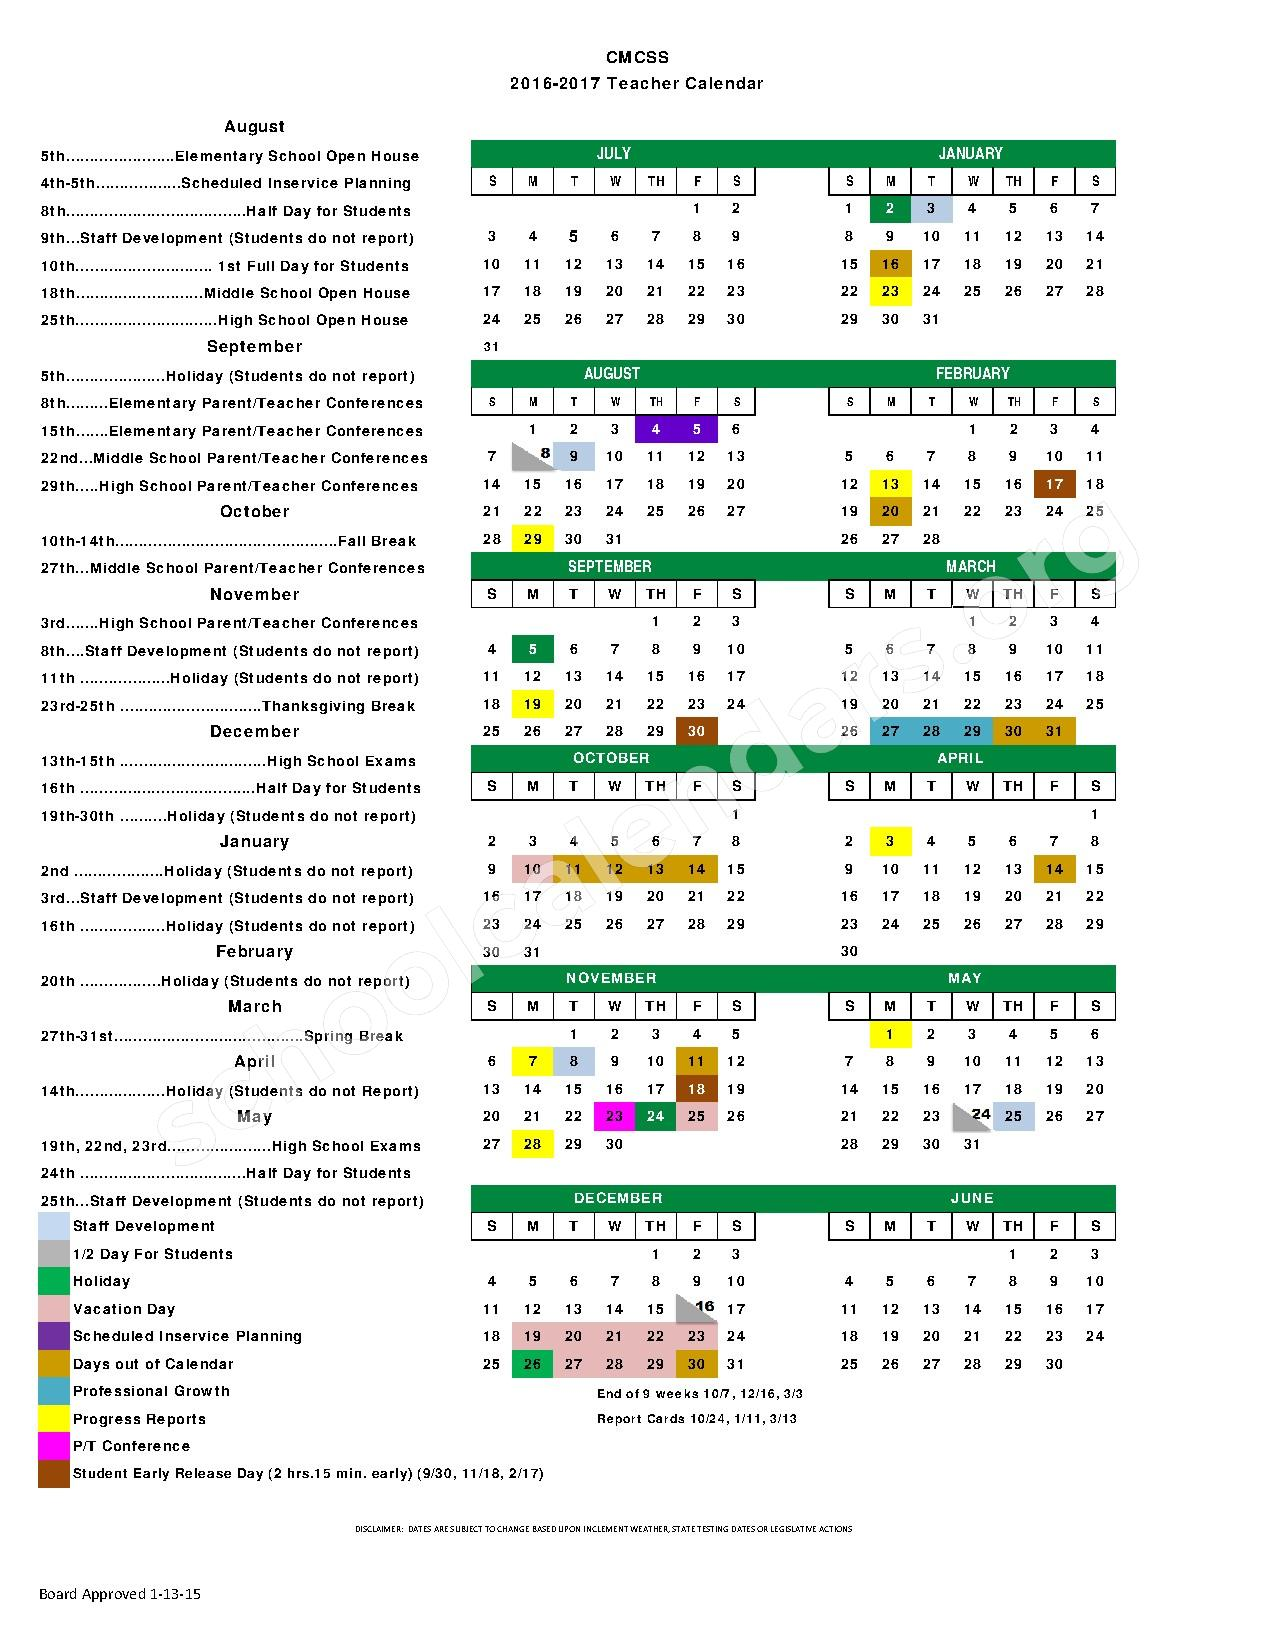 2016 - 2017 Teacher Calendar – Northeast High School – page 1